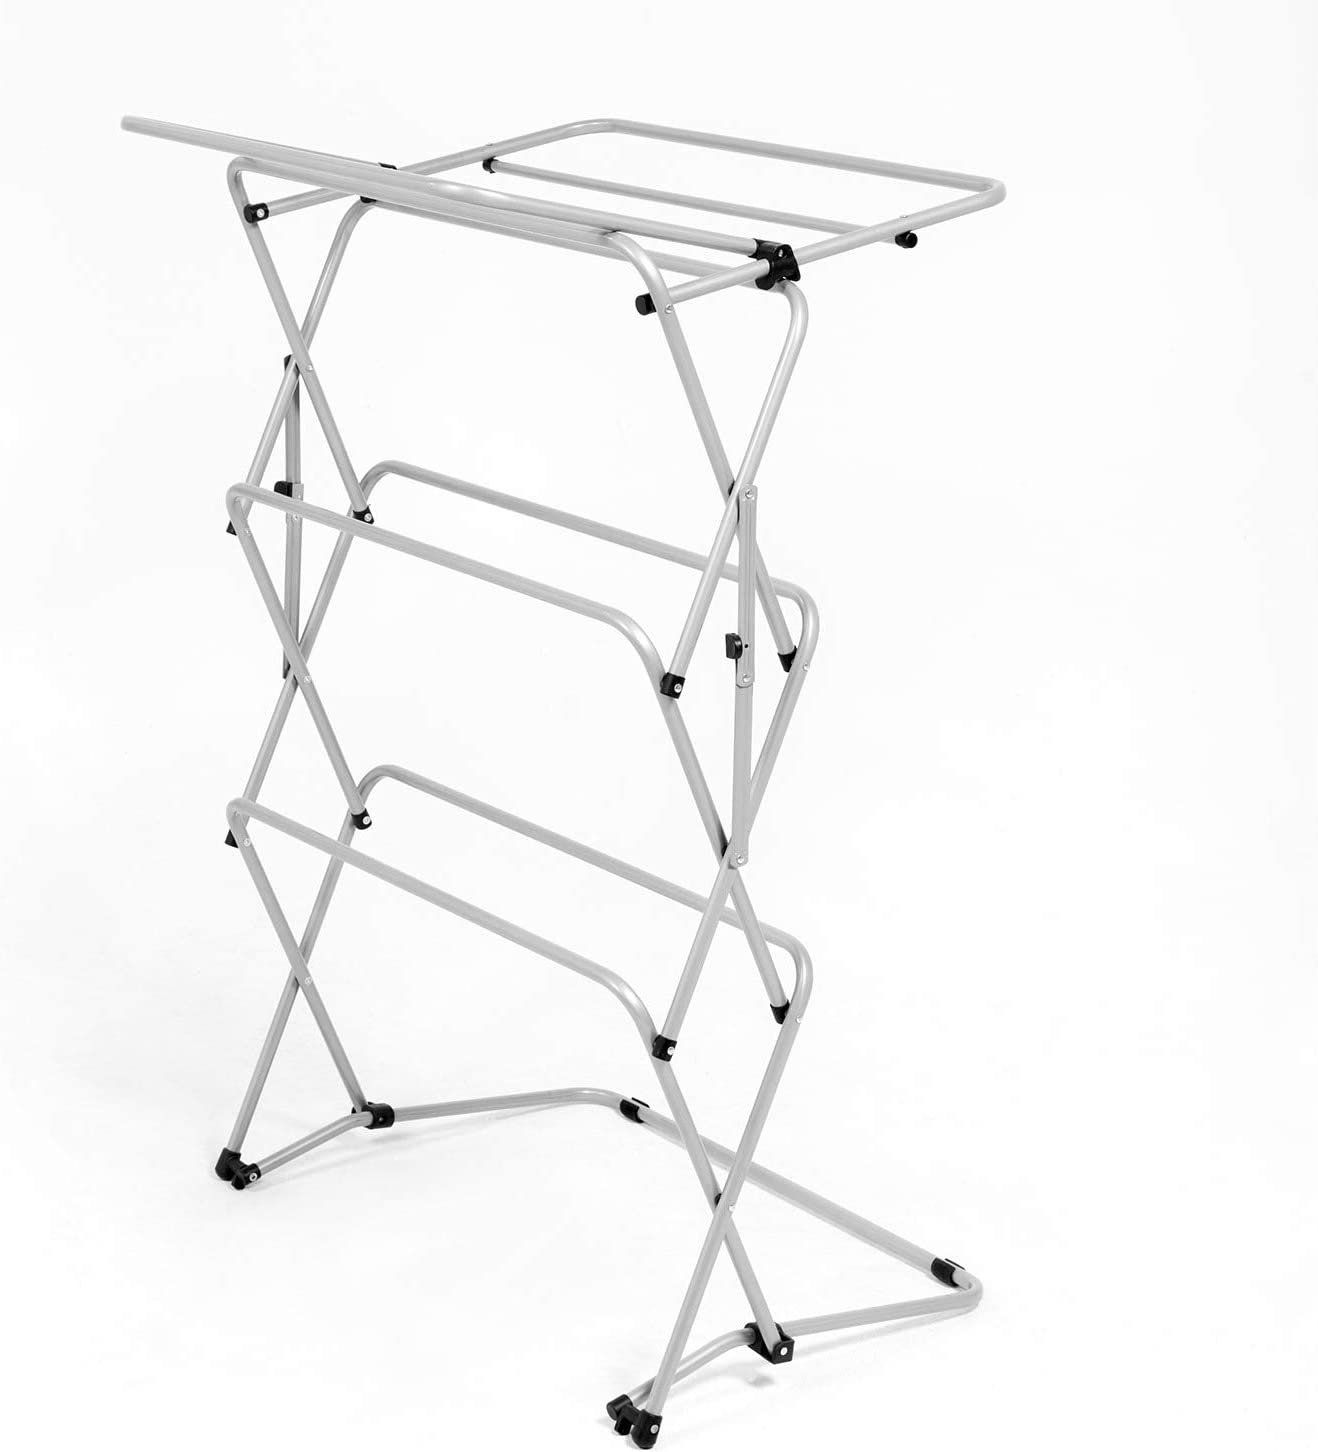 Zenree Foldable Clothes Drying Laundry Rack Clothing Scarves 3-Tier Metal Heavy Duty Stable Foling Laundry Rack for Bed Linen Silver Socks